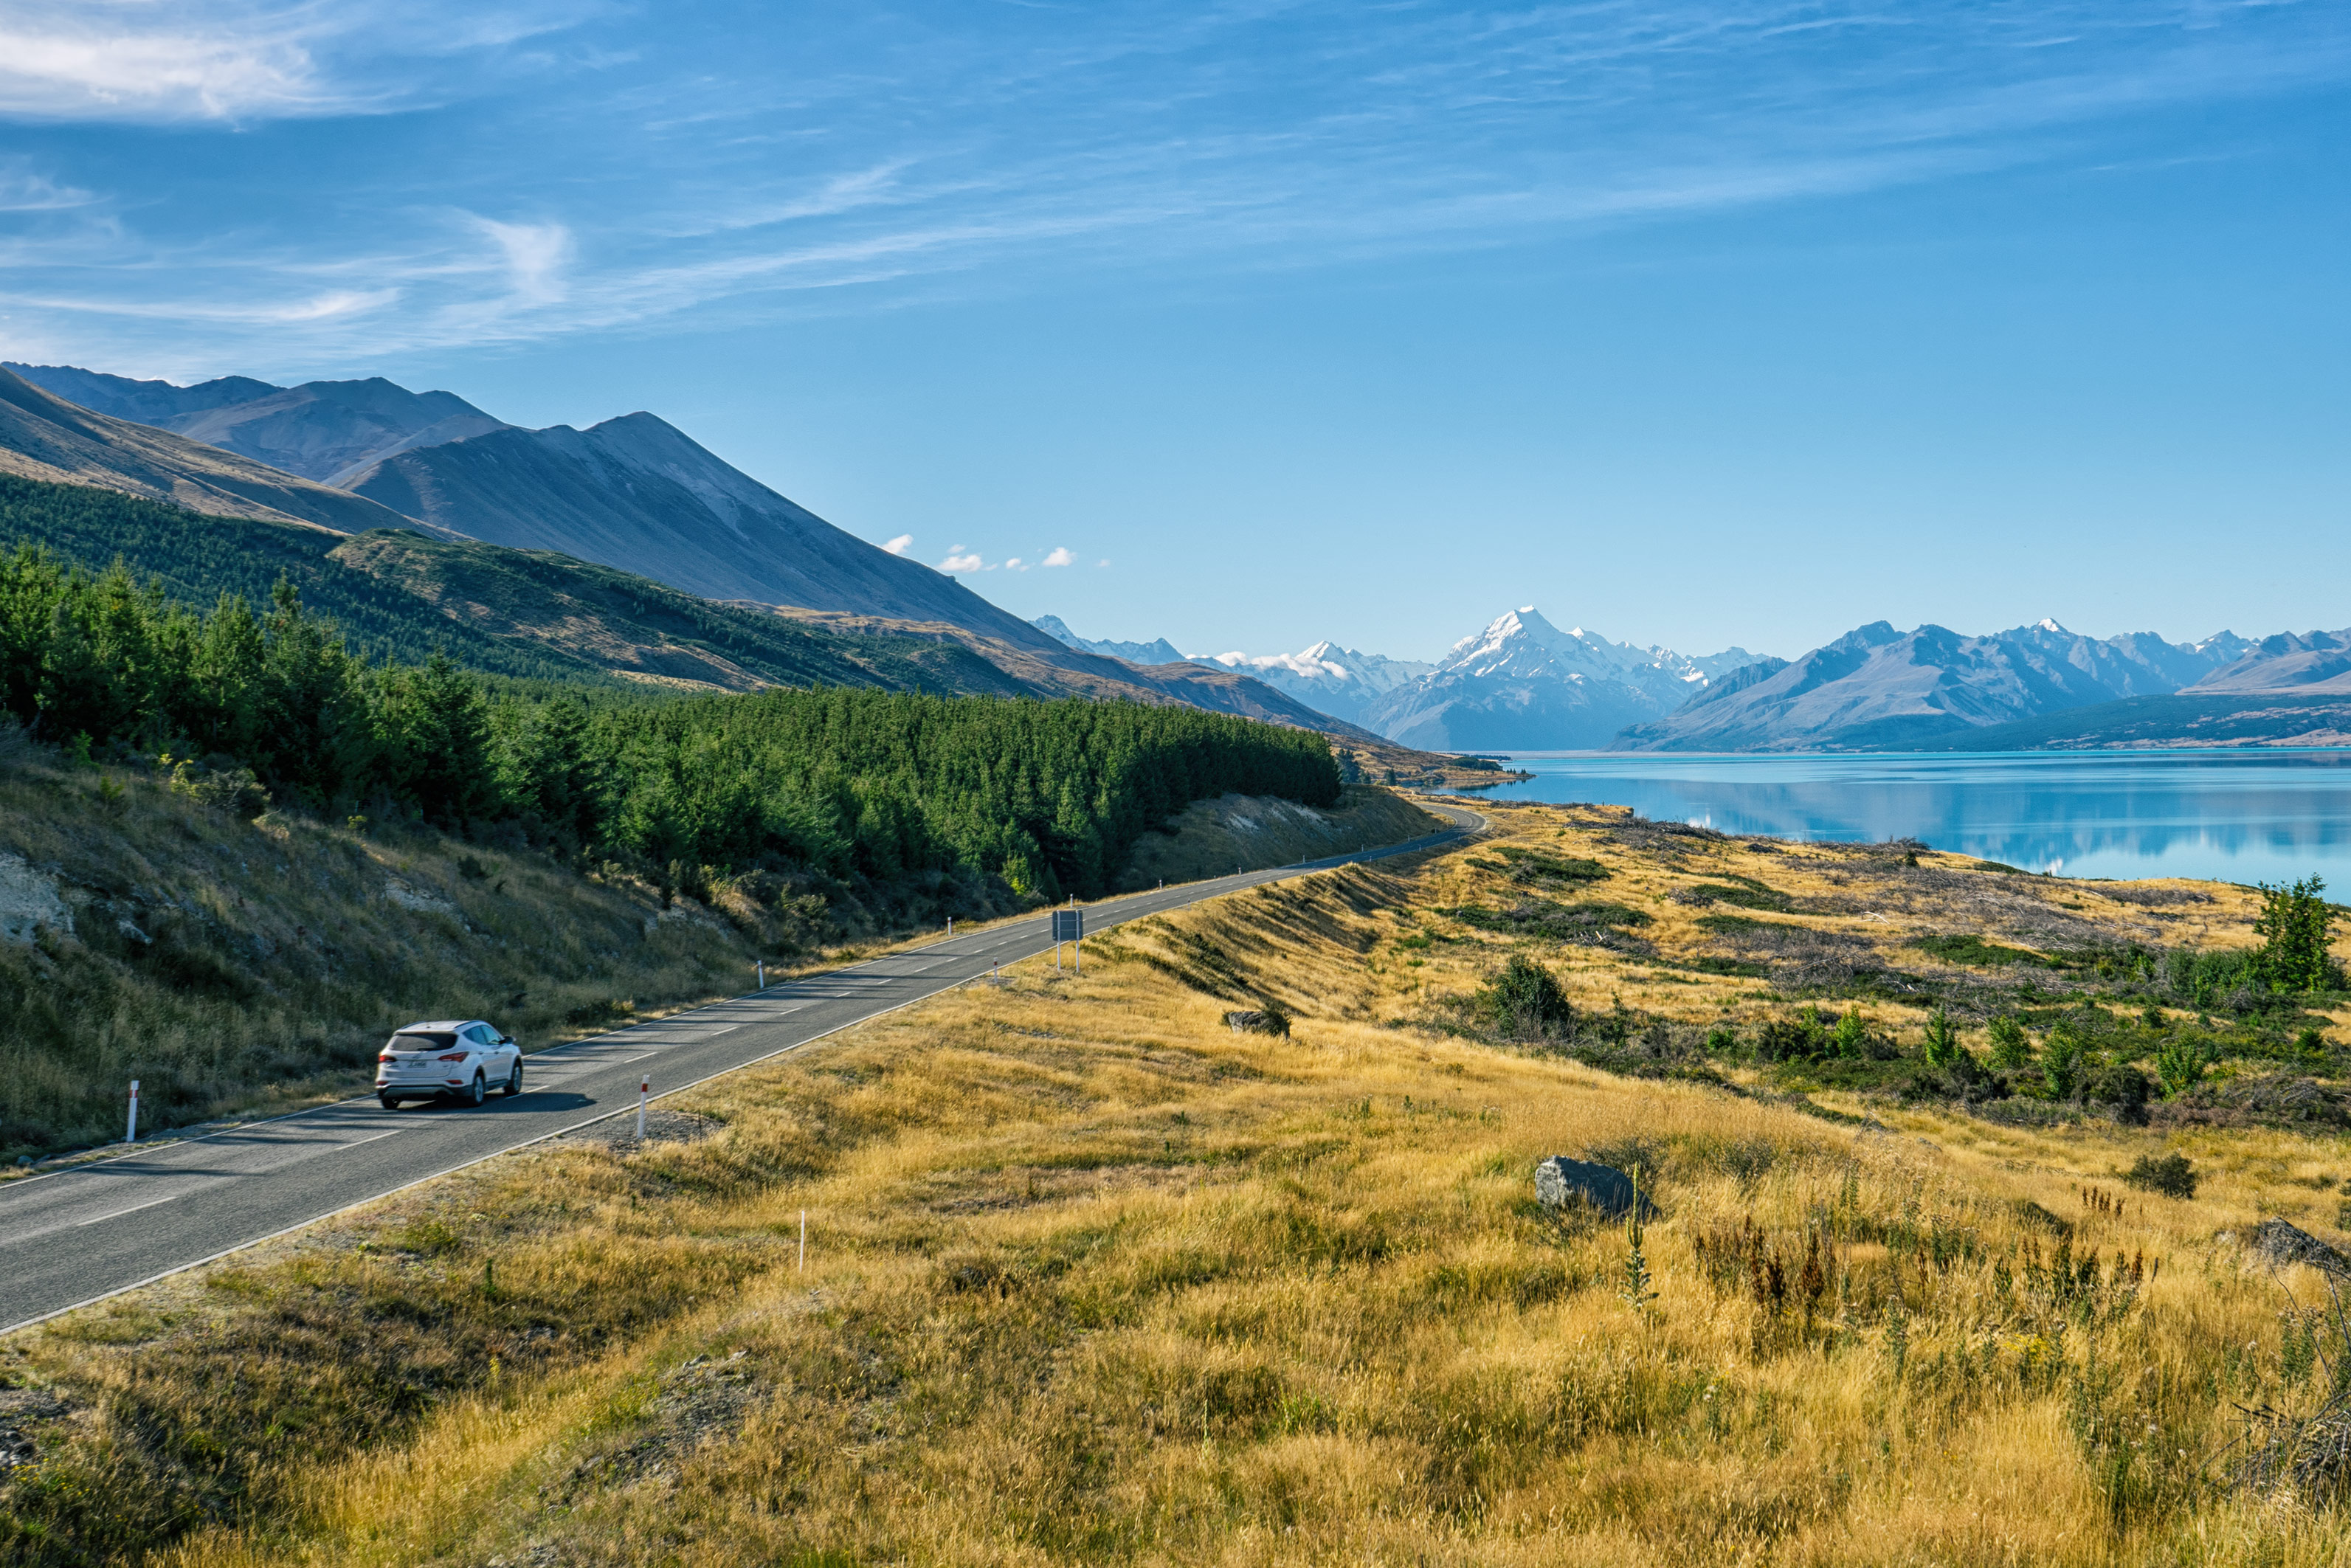 New Zealand's South Island: One-Week Ultimate Road Trip Itinerary